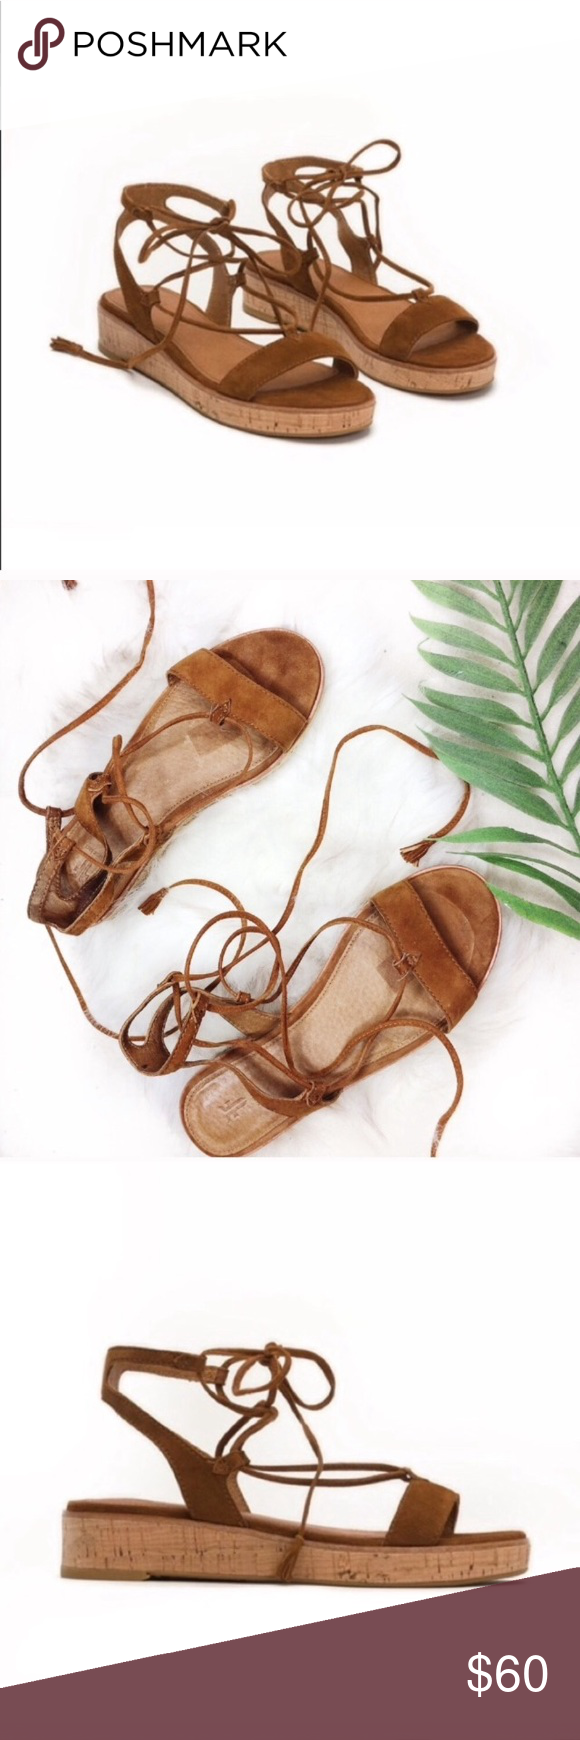 838bda16f407 Frye Miranda Gladiator Tie Up Sandals These are in good pre own condition  with slight wear. (See photos) Inside of left shoe has bubbles up on cork  area.